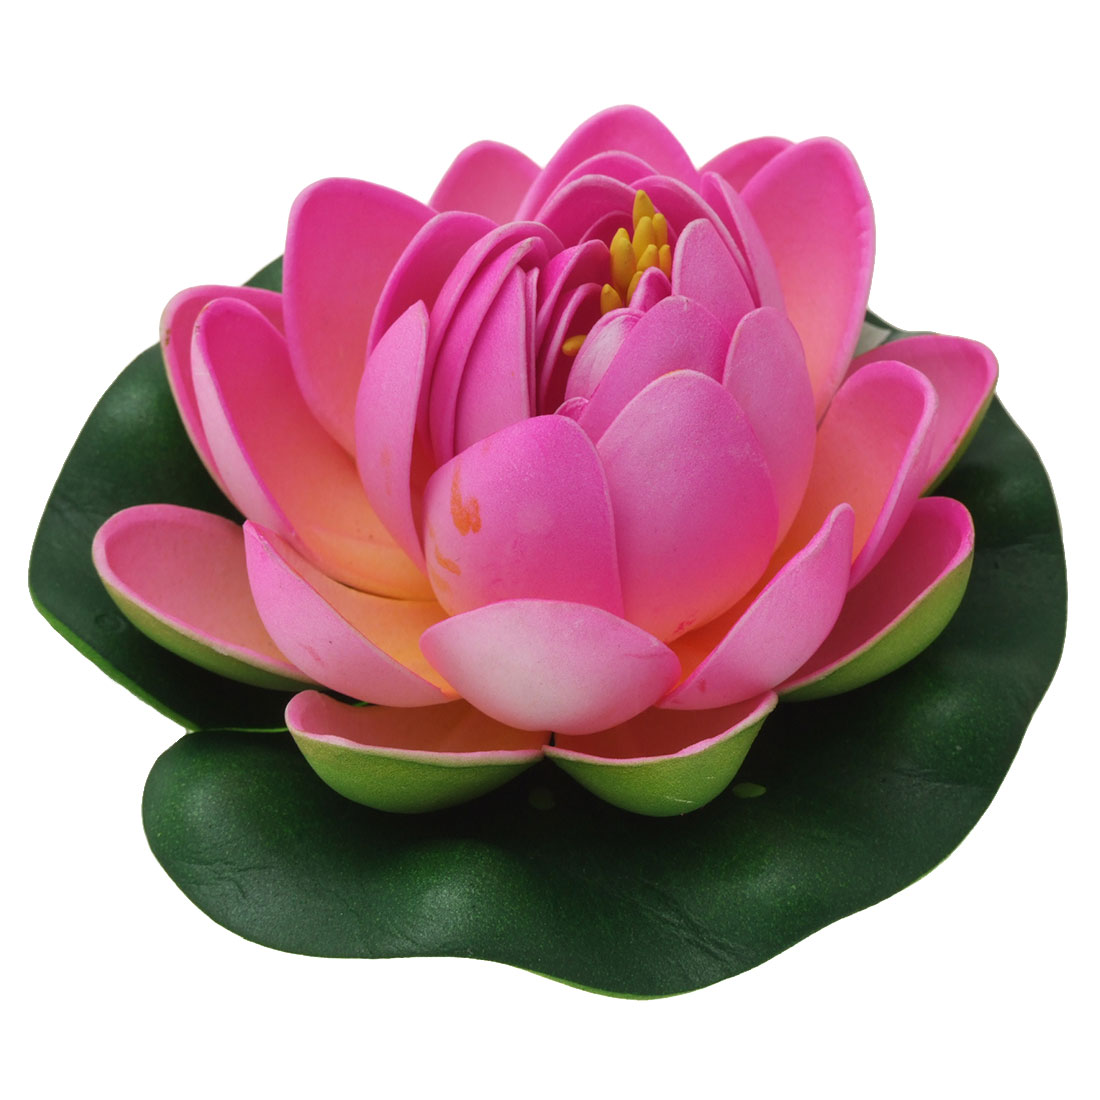 Aquarium-Decoration-Lotus-Plant-Fish-Ornament-Deocr-Pnk